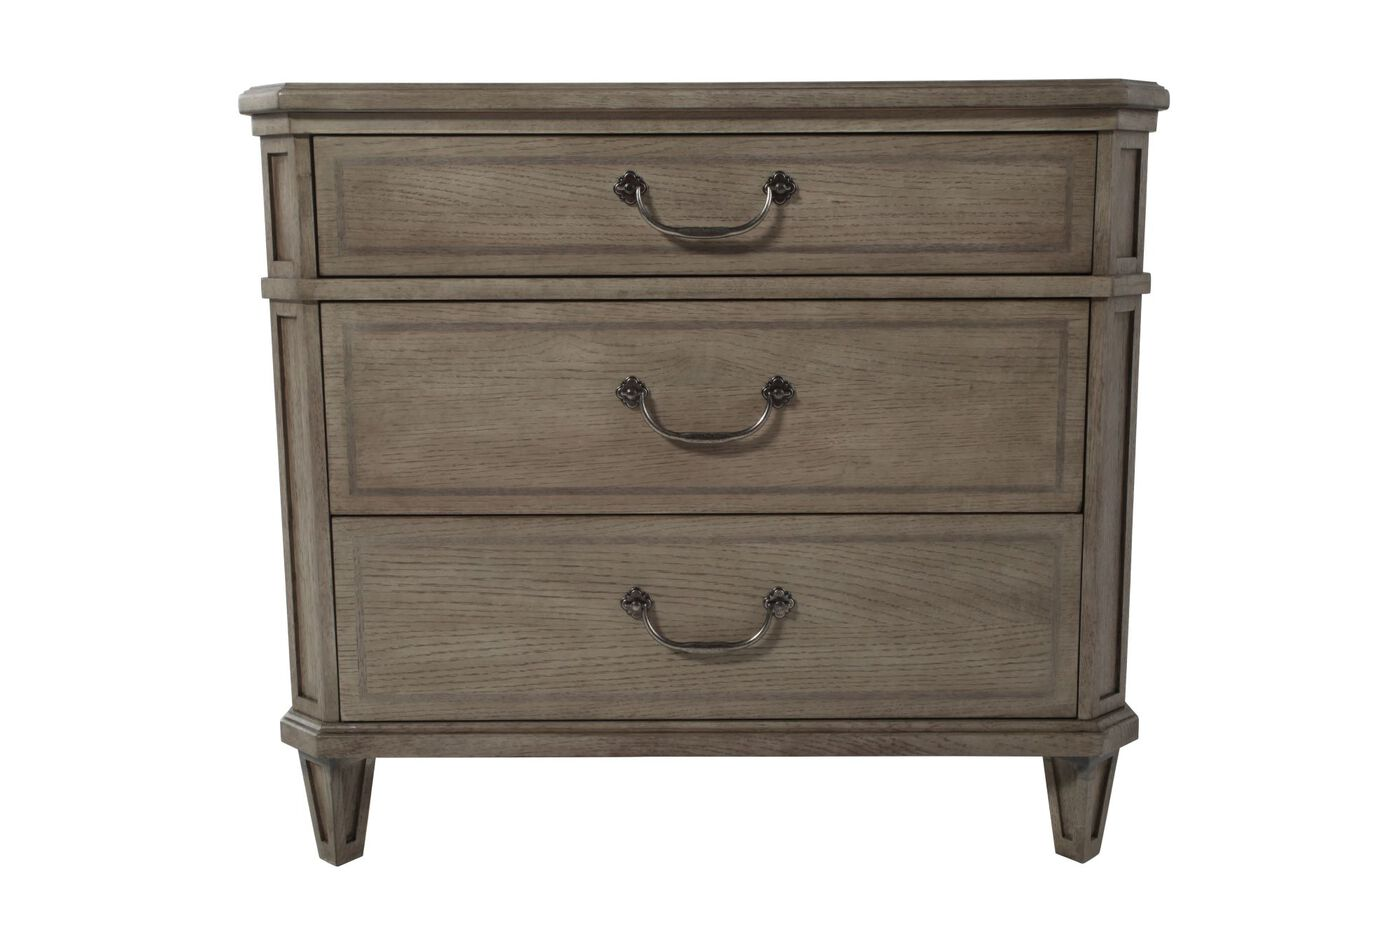 30 Refined Romantic Luxury Nightstand In Gray Cashmere Mathis Brothers Furniture